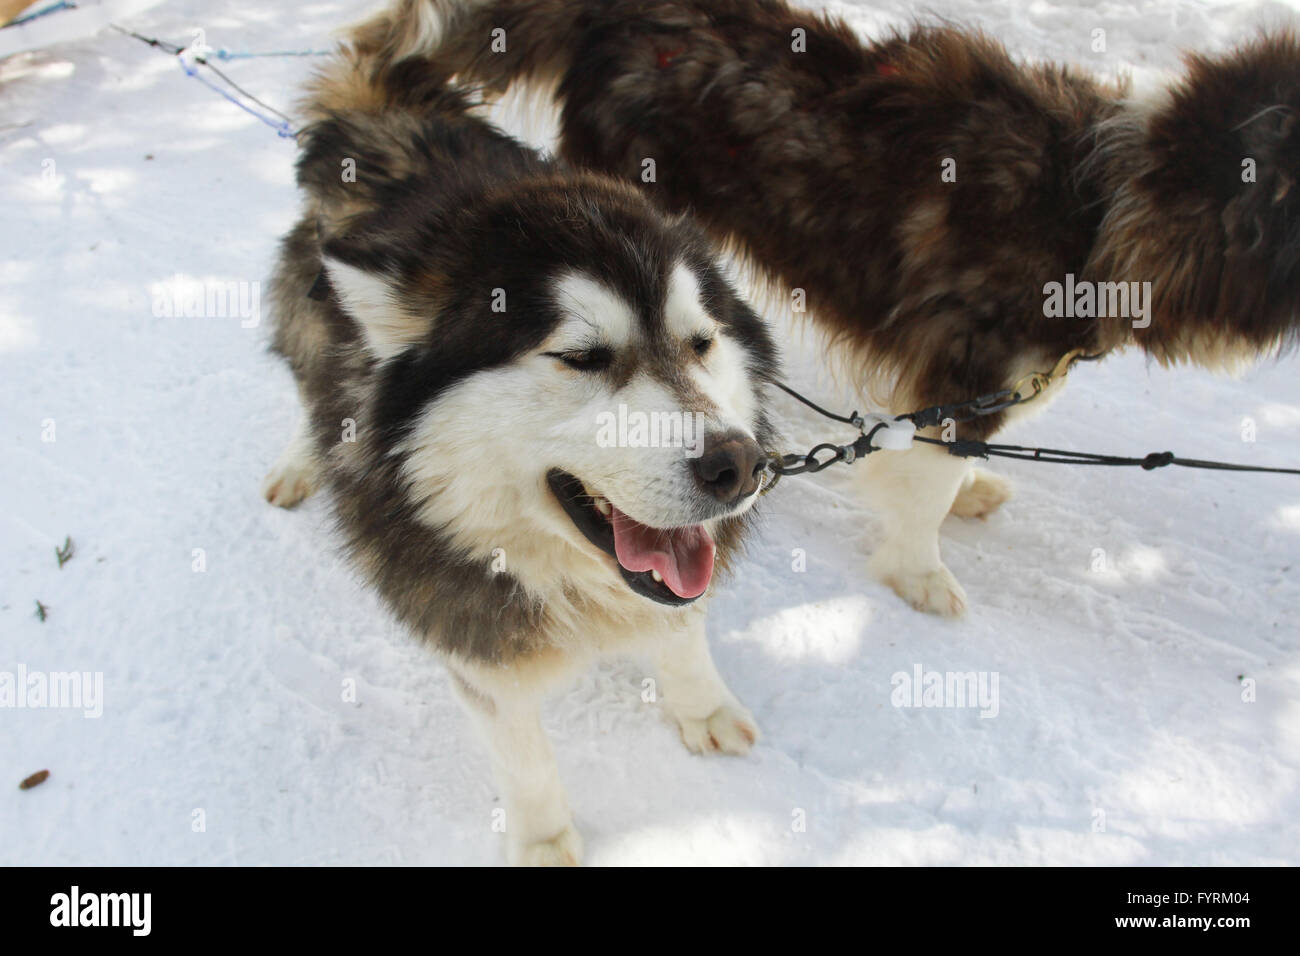 A dog sledding camp in Plessisville, Quebec. Canada. - Stock Image